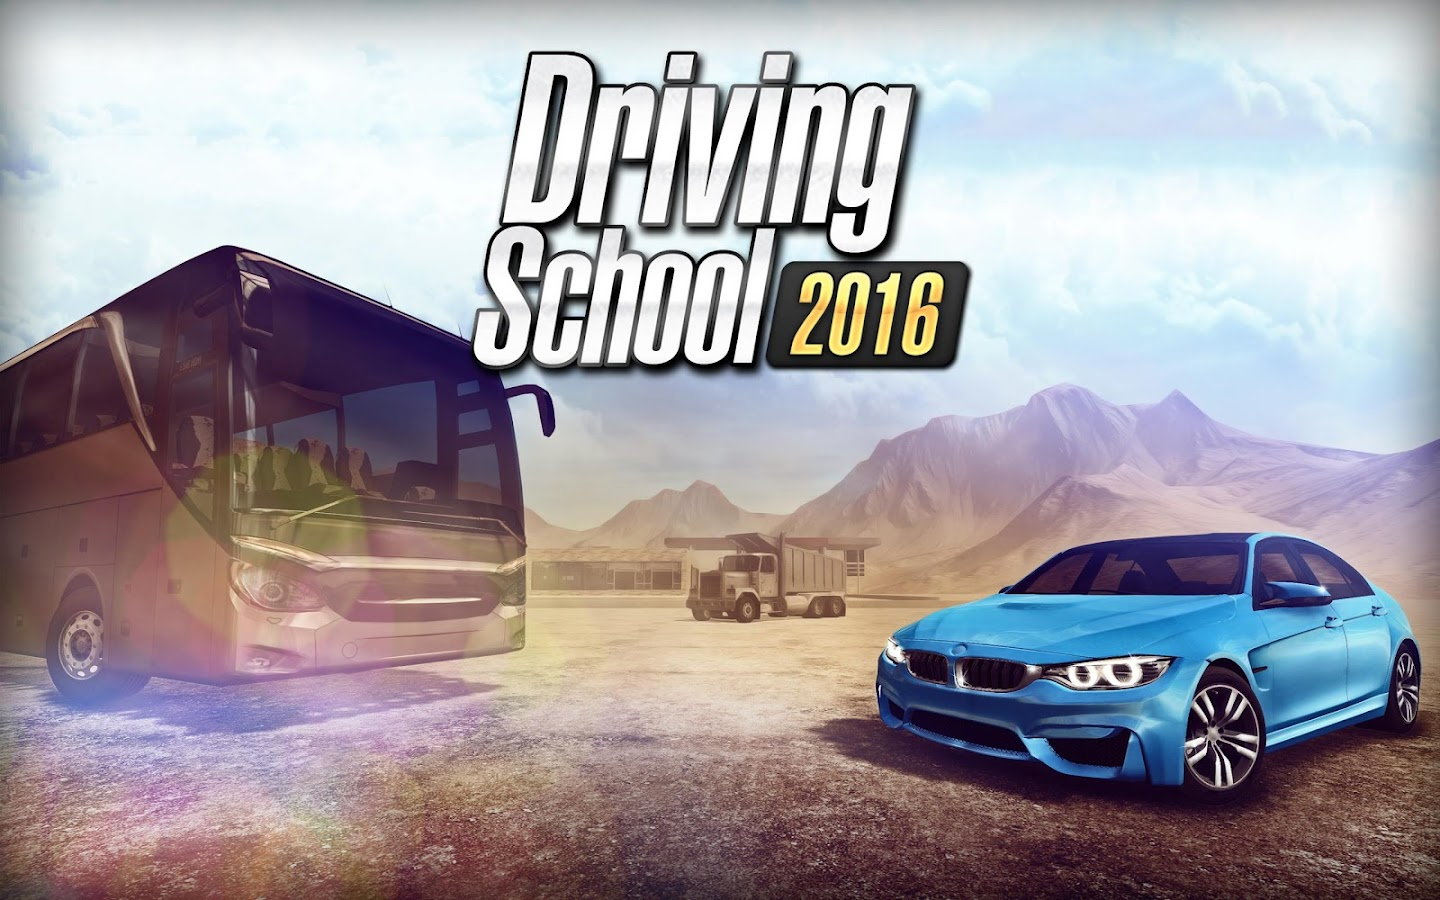 Driving School 2016 Screenshot 6